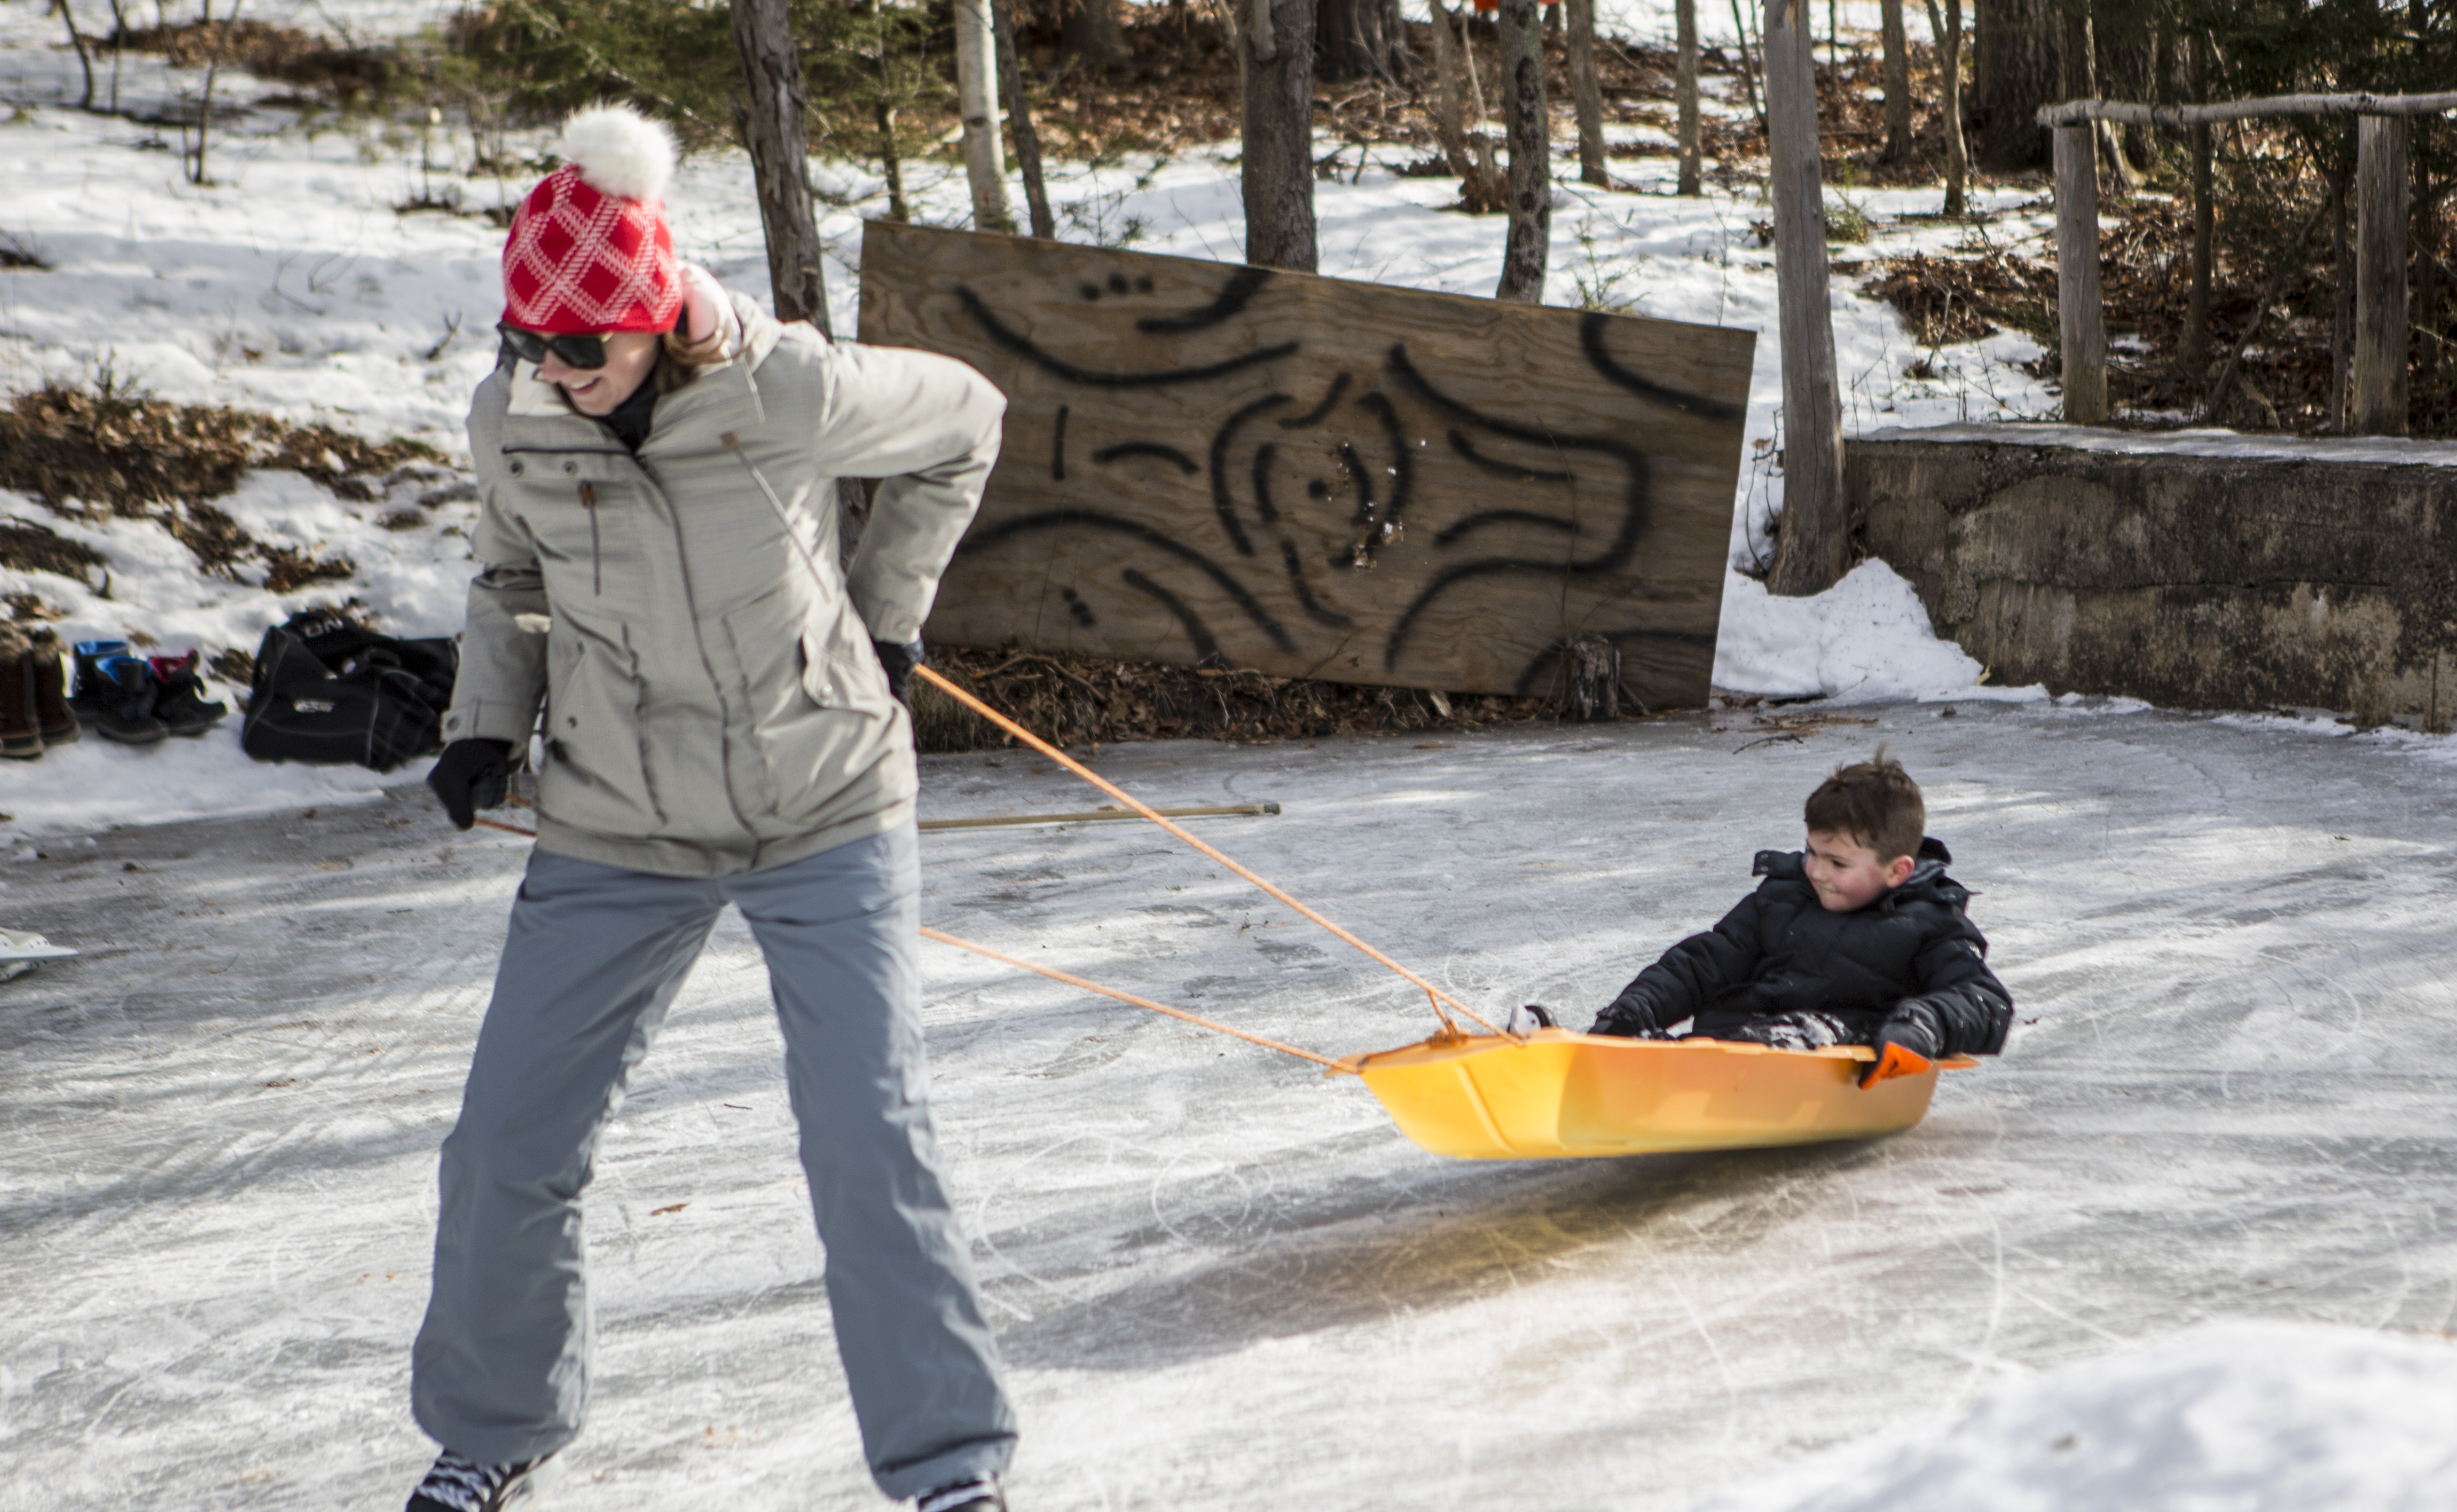 Woman skating on a pond and pulling kids in a sled